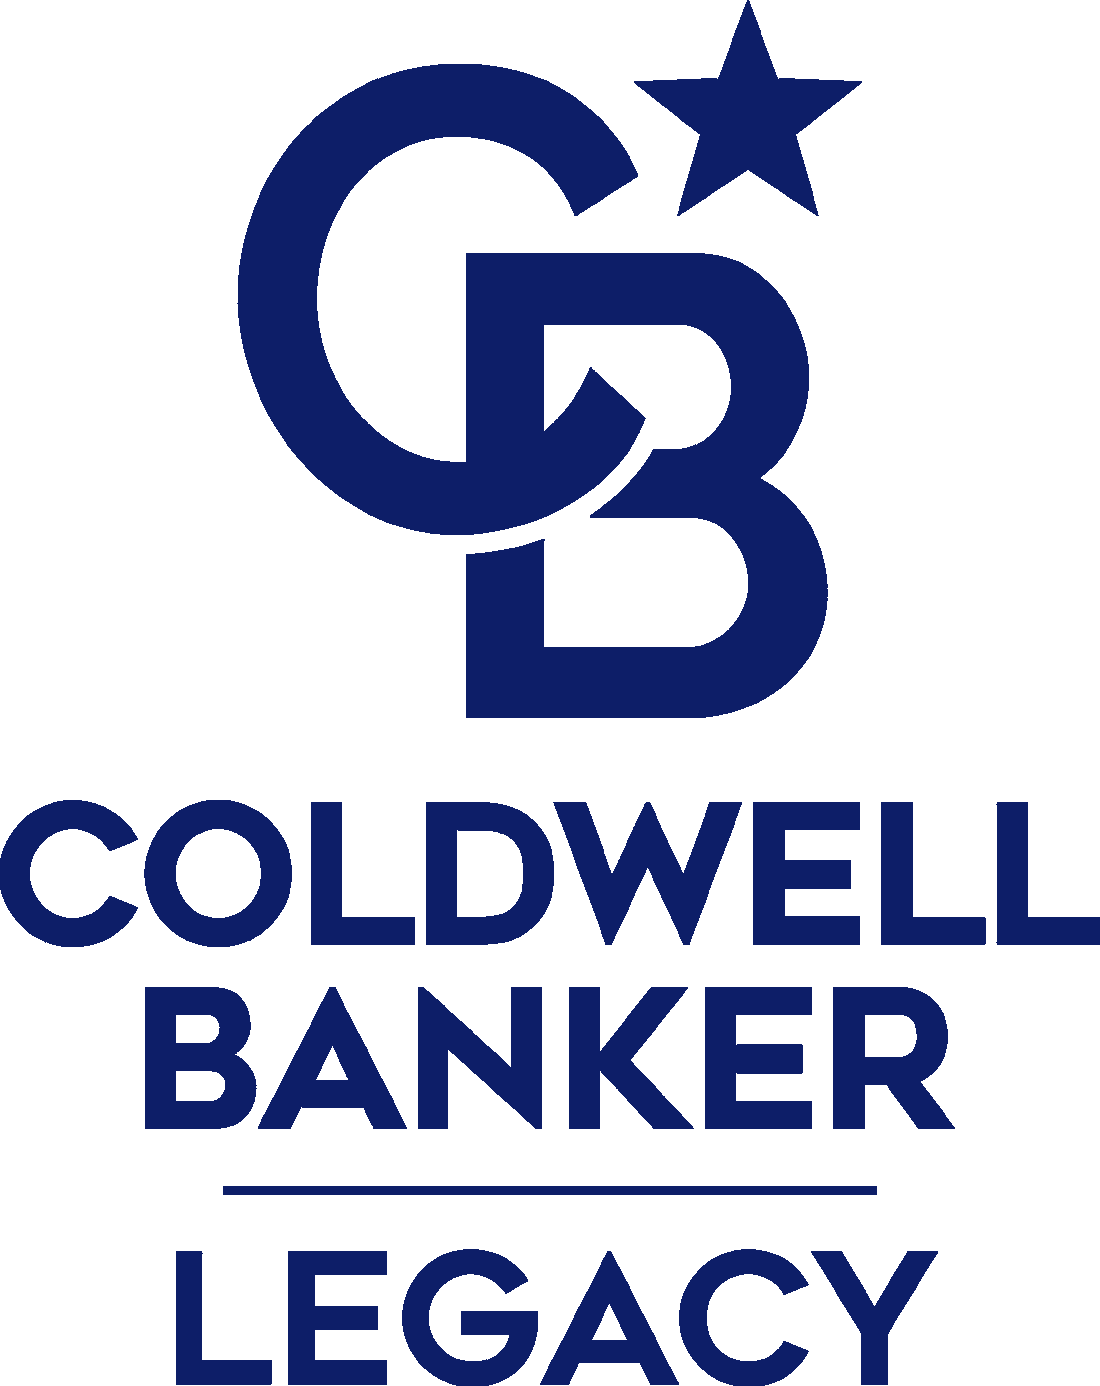 Kenneth & Mandy Wright - Coldwell Banker Legacy REALTORS® Logo